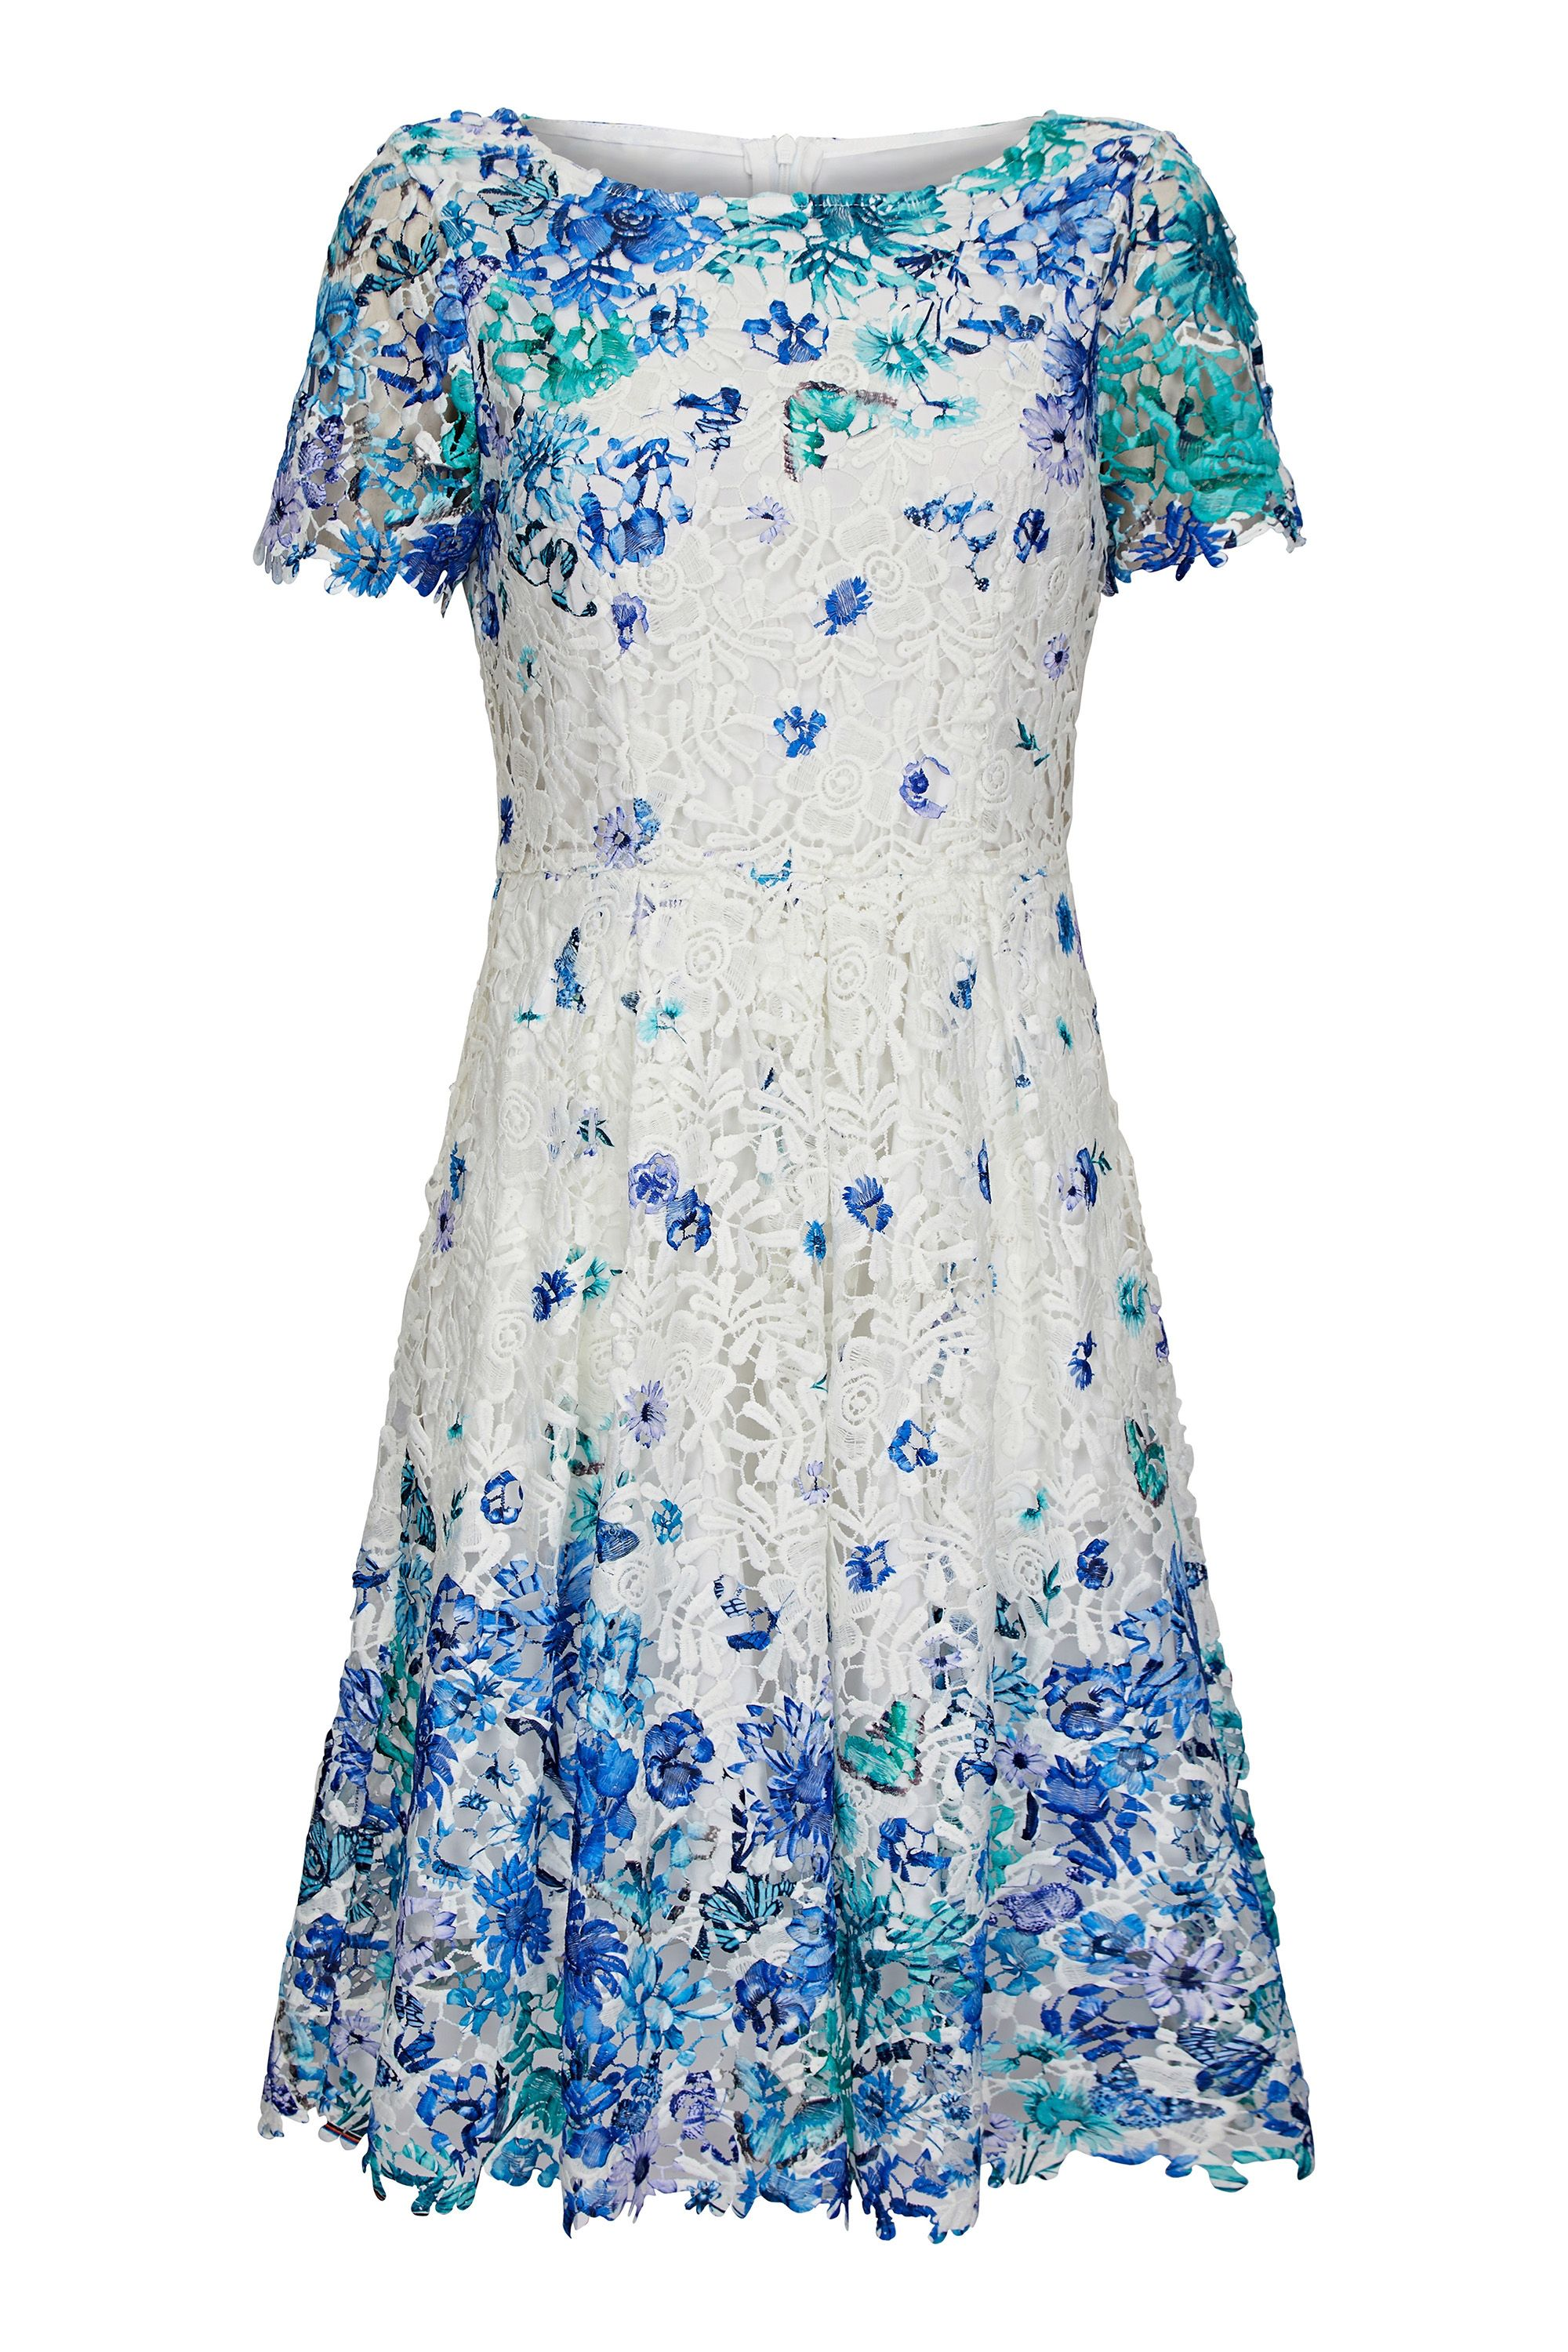 White Butterfly Print Lace Party Dress